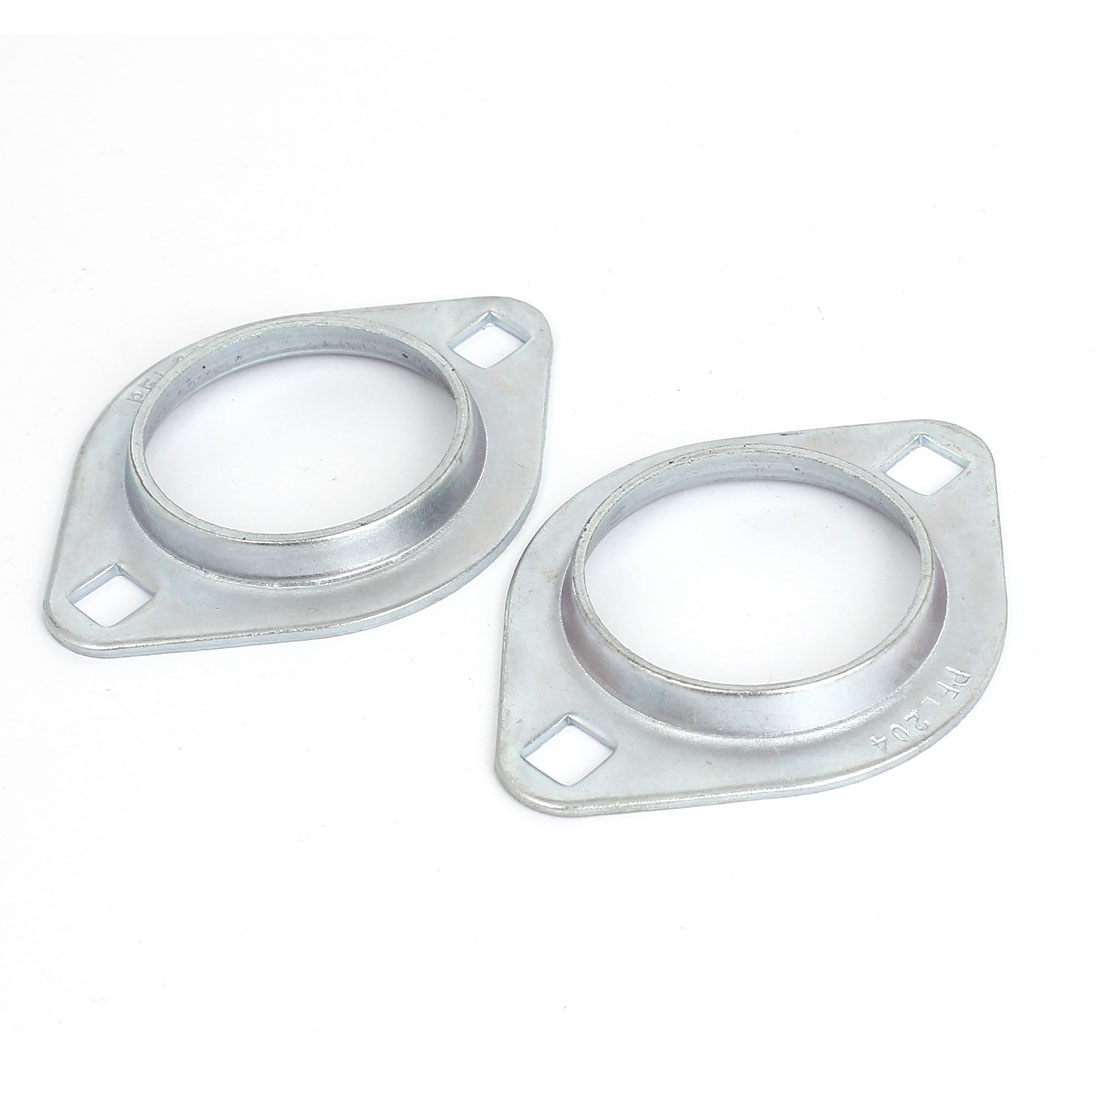 SBPFL204 Pressed Steel Flange Bearing Holder Housing Oval Pillow Block 2pcs